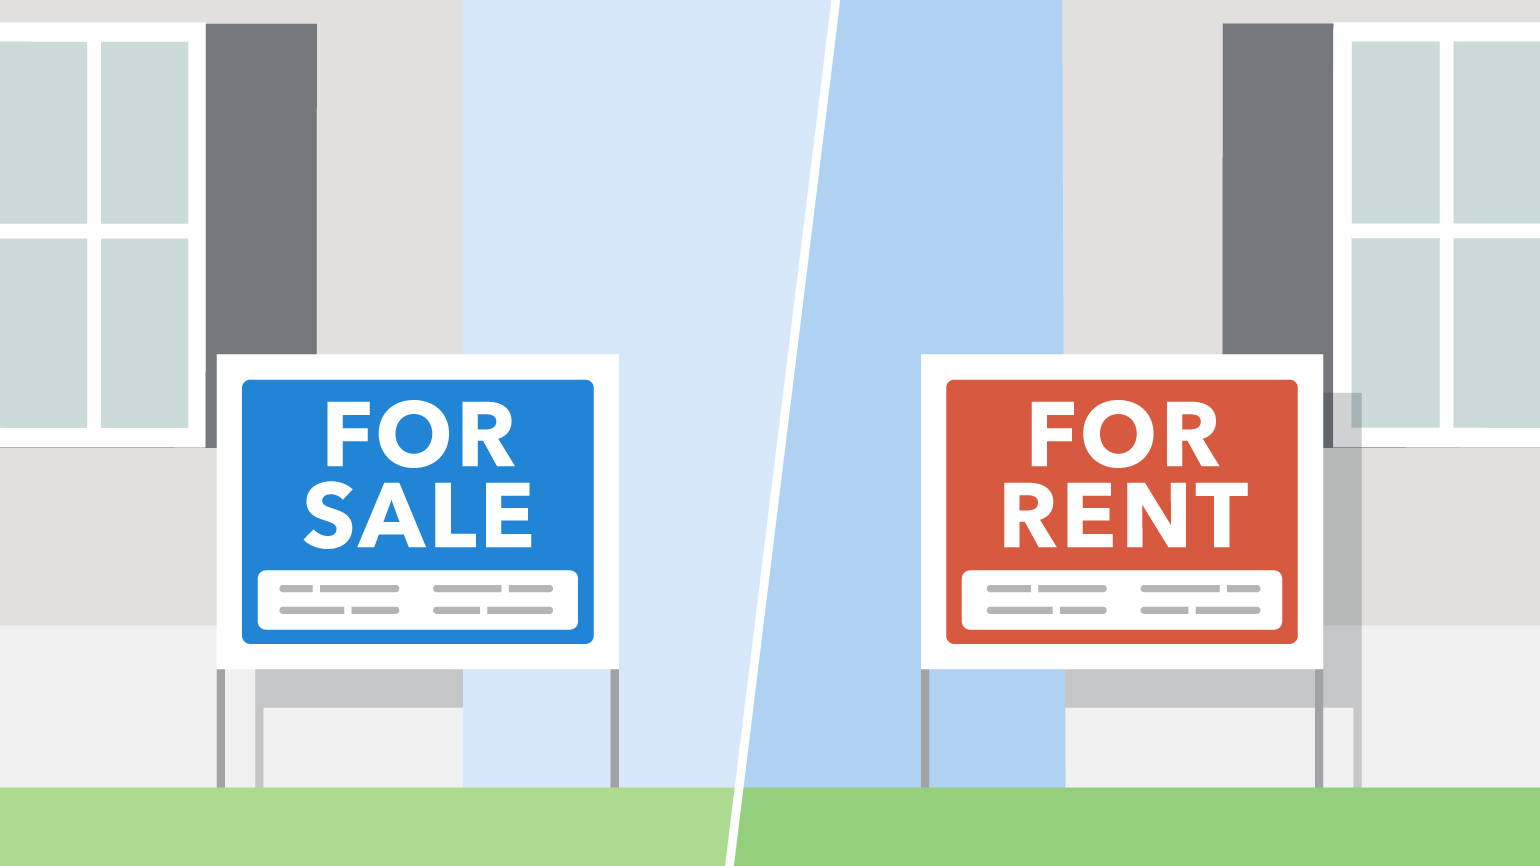 4 Perks To Buying Your Home Over Renting